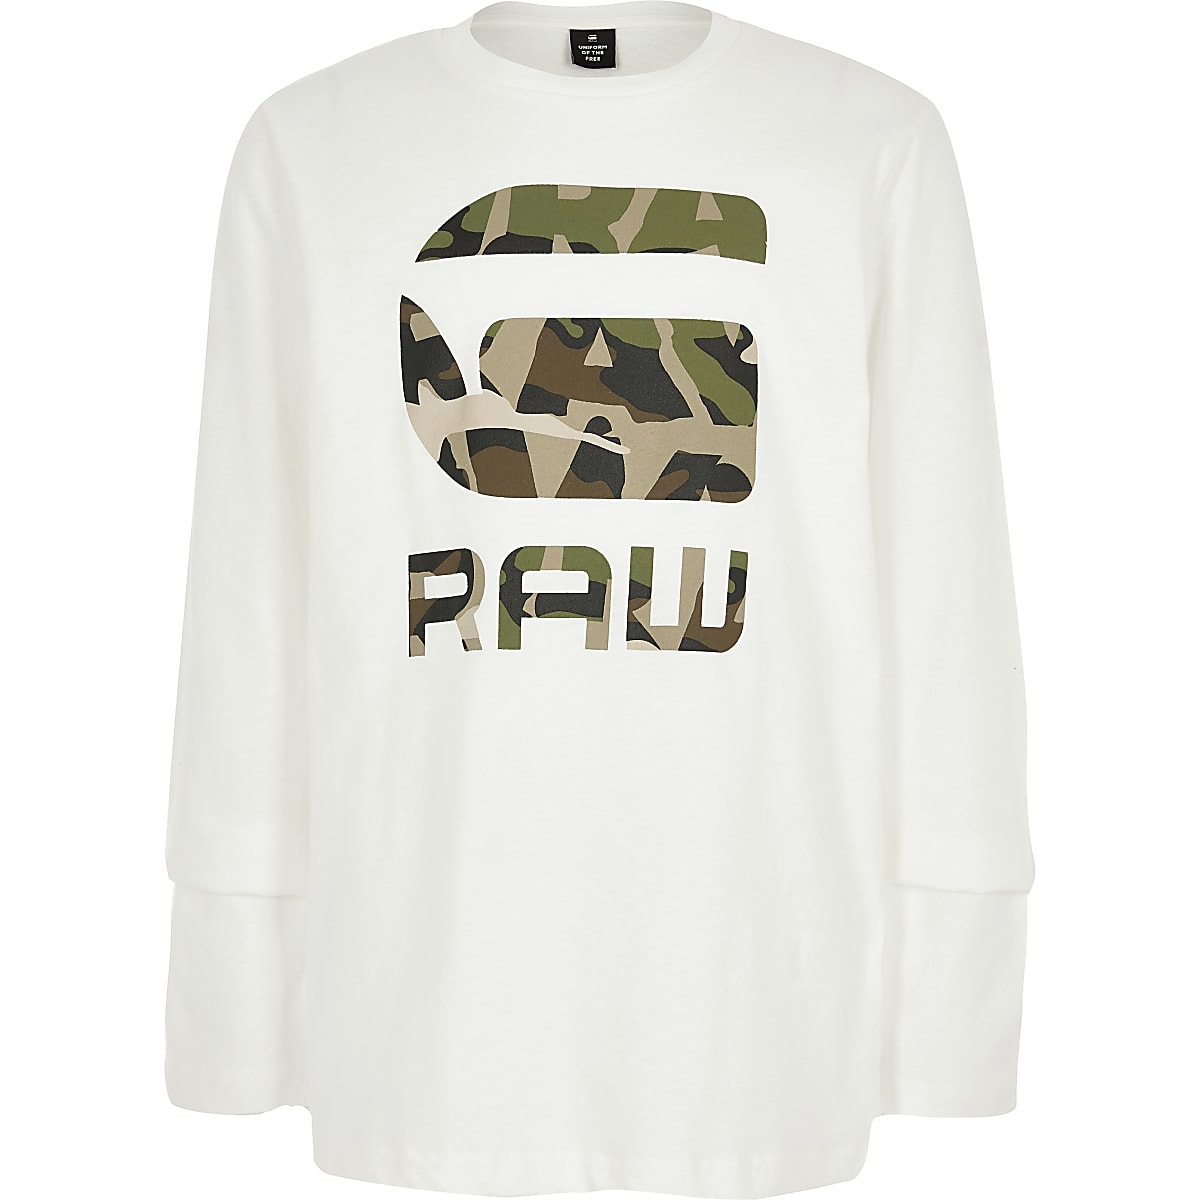 Boys G-star Raw camo logo long sleeve T-shirt